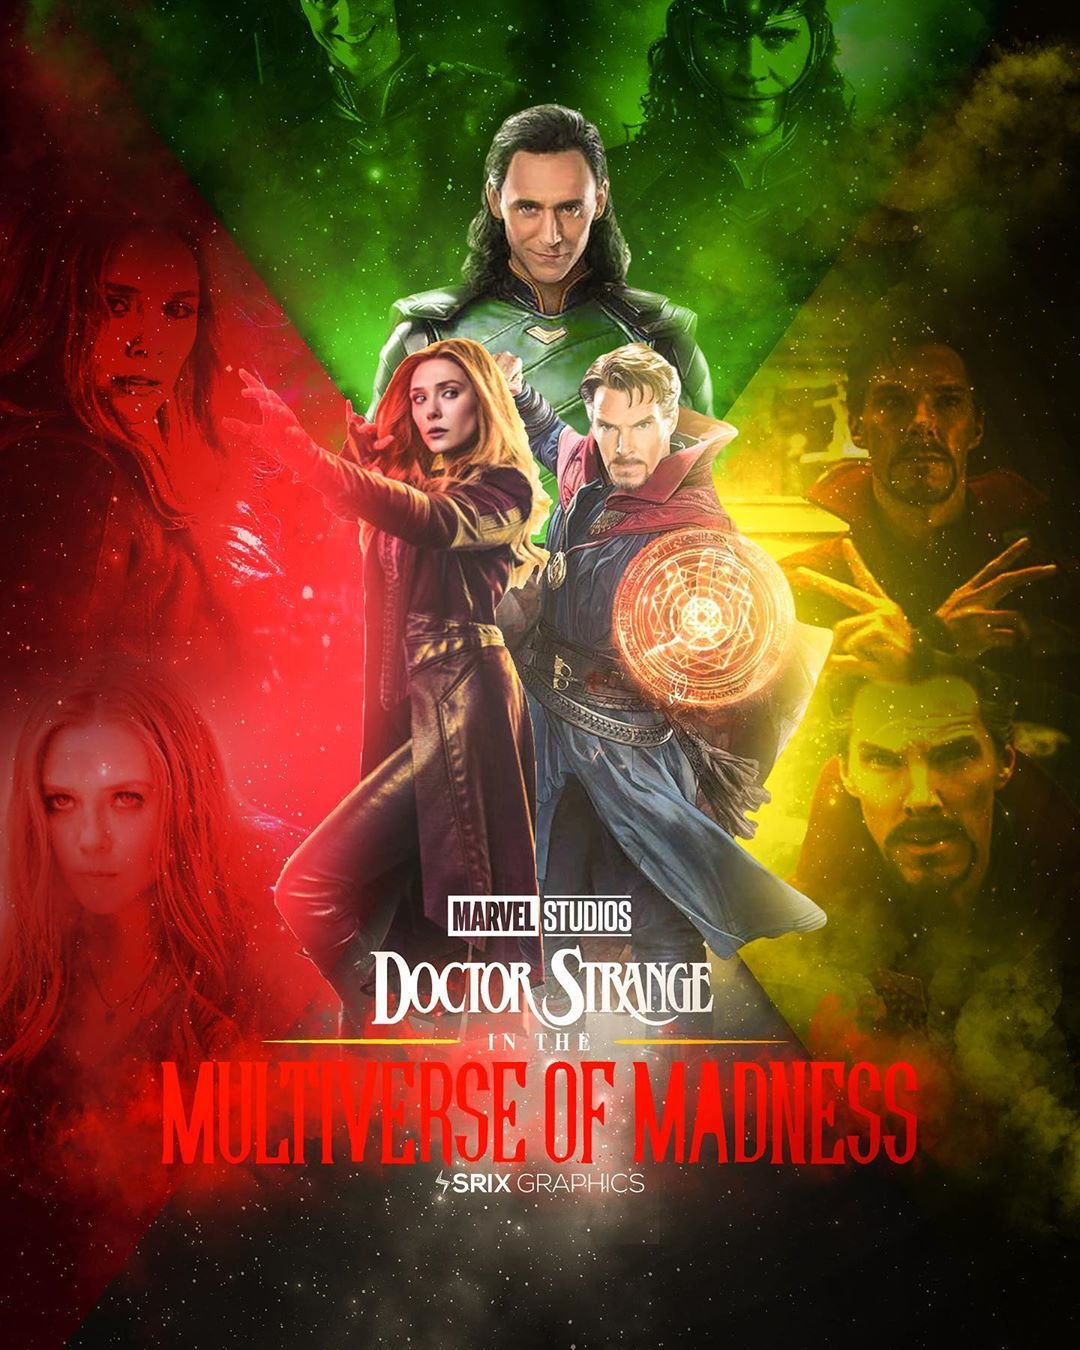 Srix Graphics C On Instagram Doctor Strange Multiverse Of Madness Our 2021 Can T Wait For These Three To Meet Up Comicbook Marvel M Marvel Filme Bilder